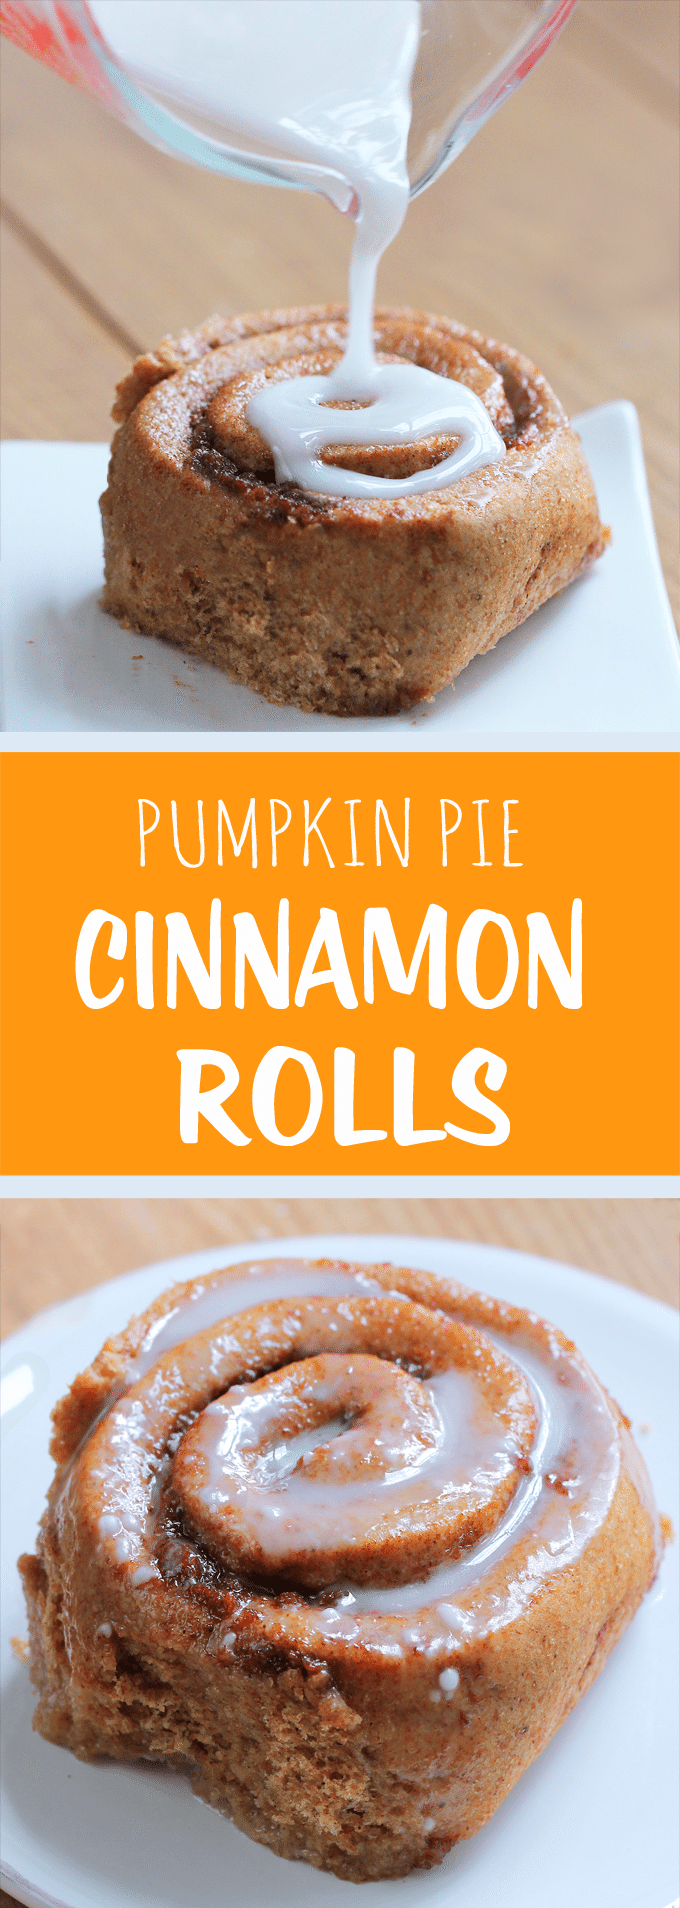 Pumpkin Cinnamon Rolls - Ingredients: 1 cup pumpkin, 2 tsp vanilla extract, 2 tbsp baking powder, 1/4 cup... Full recipe: http://chocolatecoveredkatie.com/2013/10/22/pumpkin-cinnamon-rolls/ @choccoveredkt